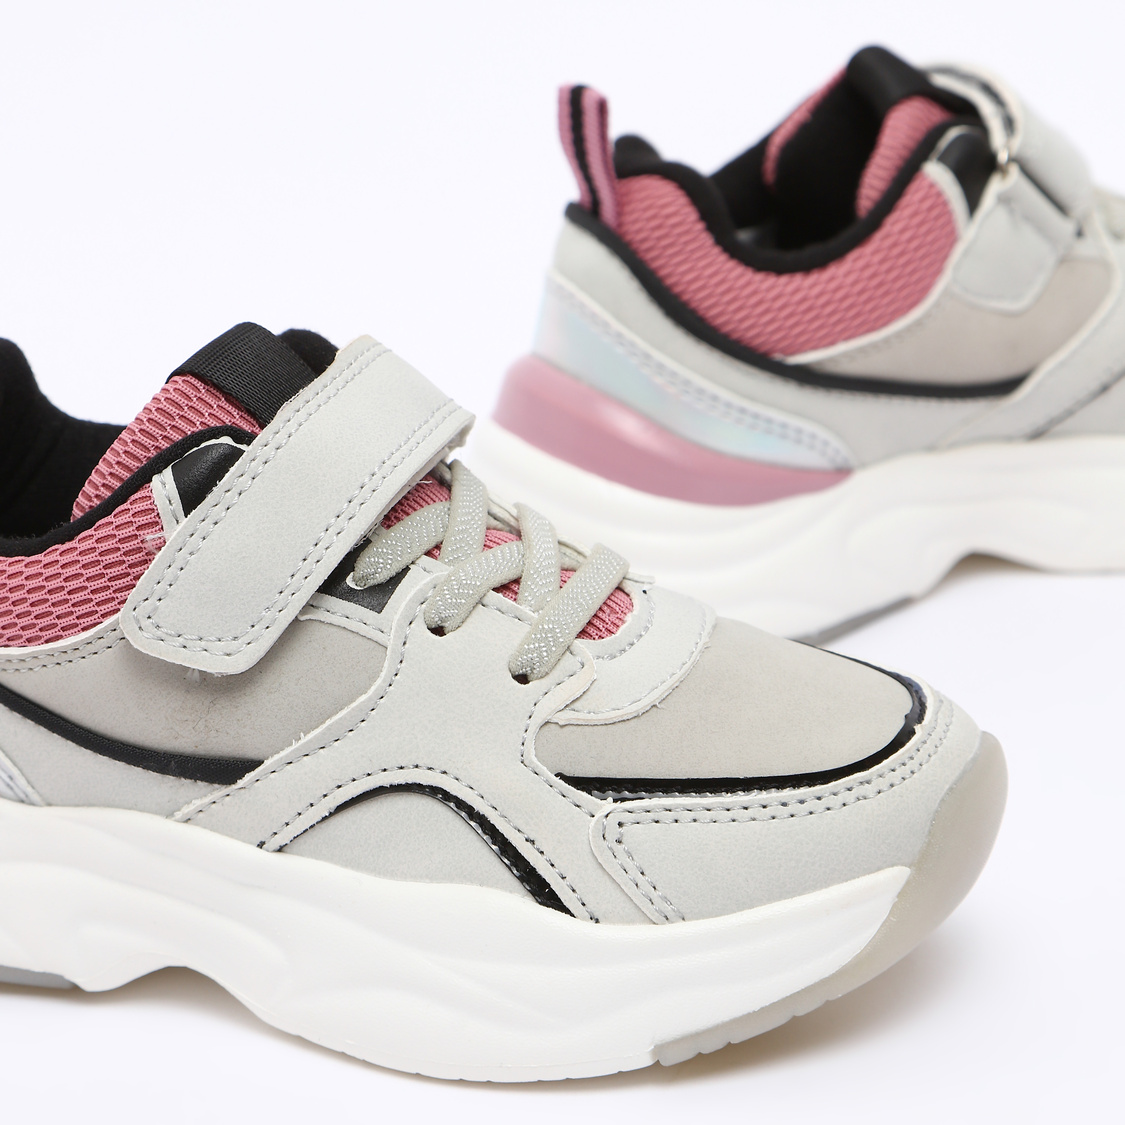 Textured Running Shoes with Hook and Loop Closure